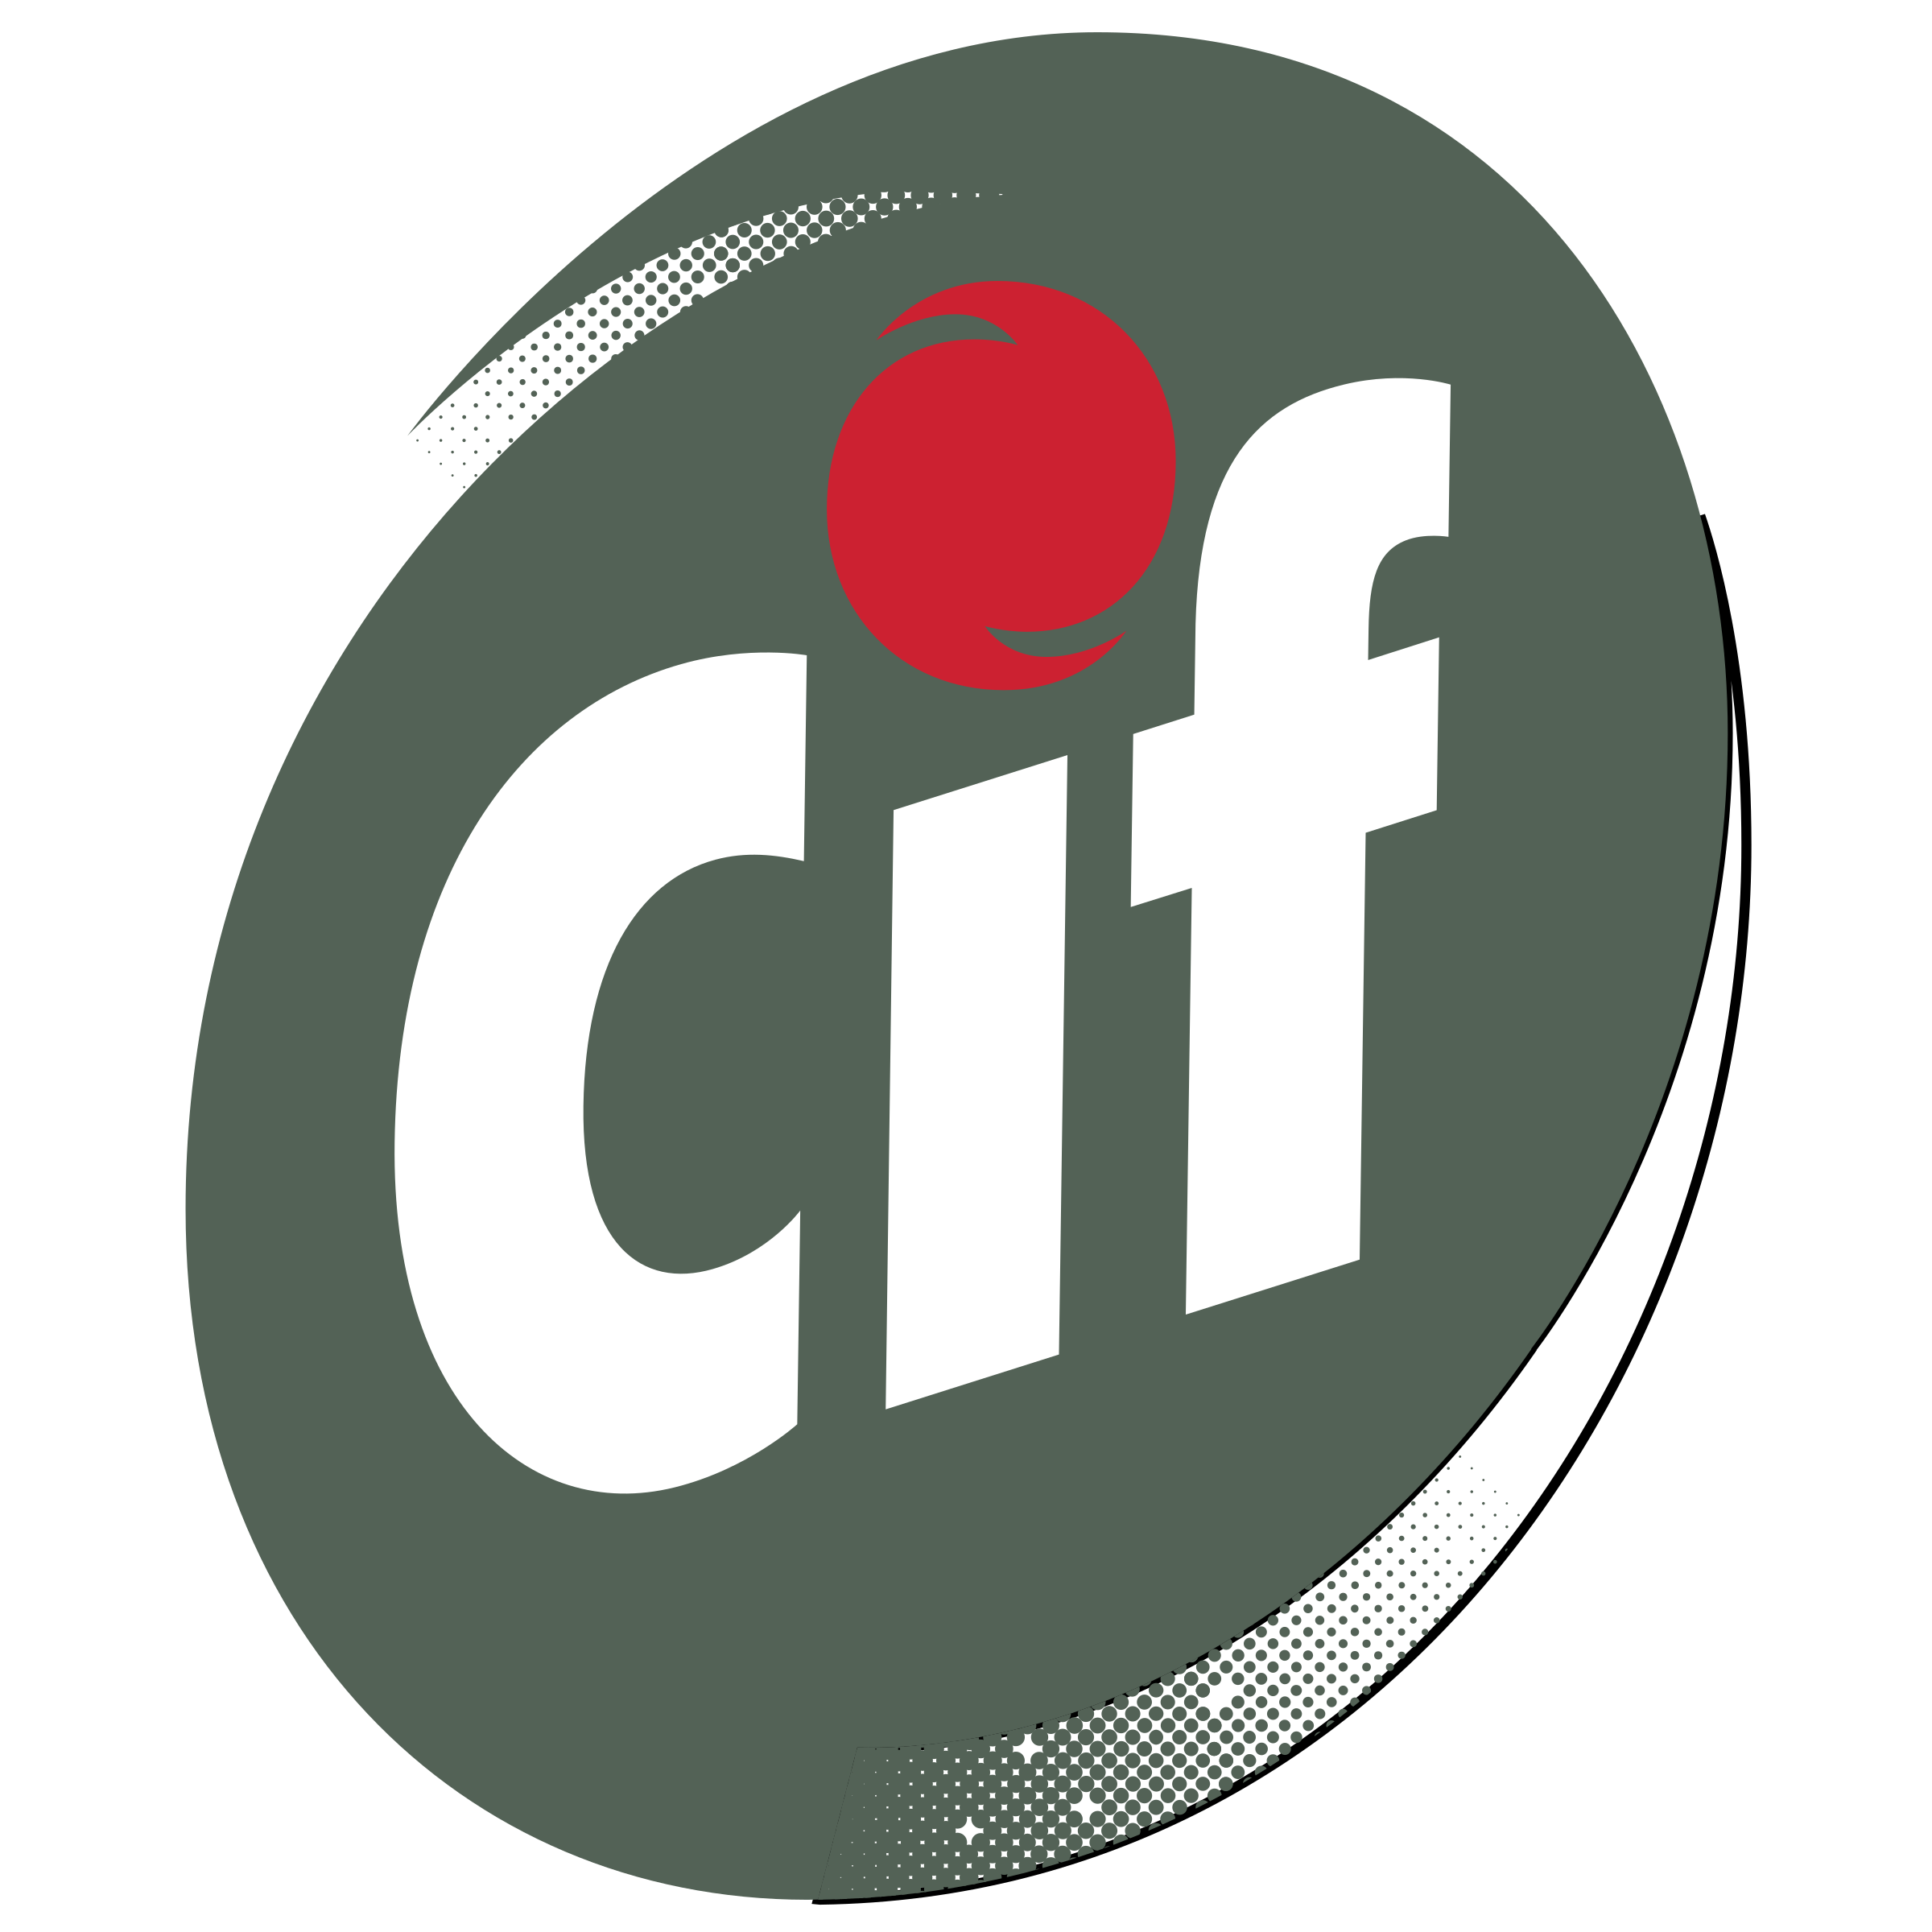 Cif 1729 Logo PNG Transparent